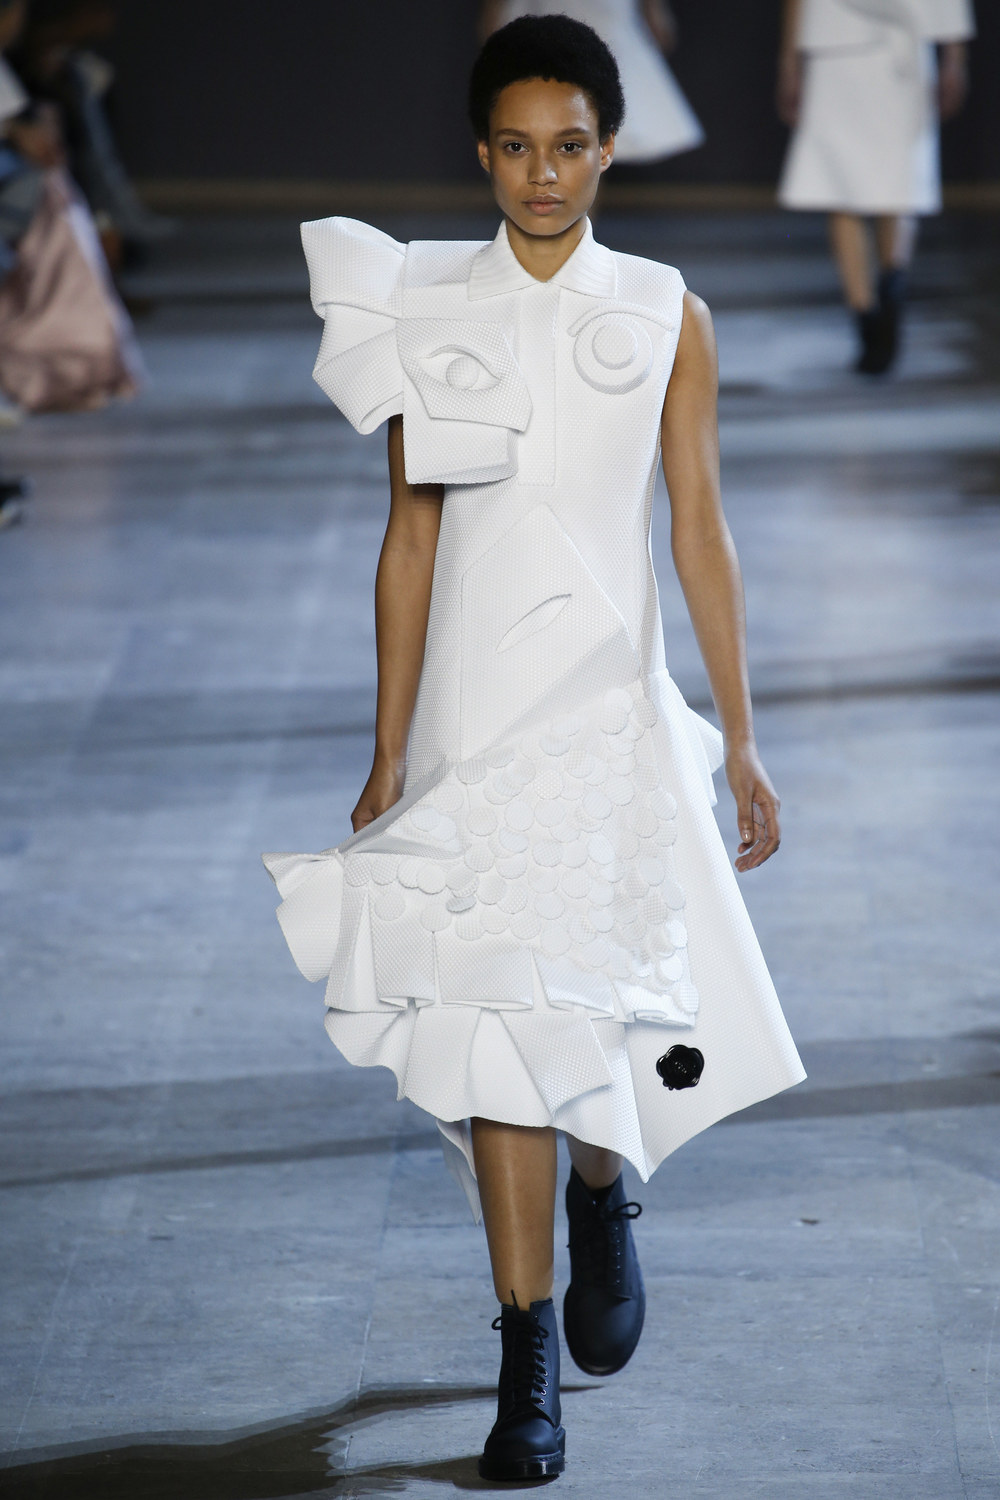 Viktor & Rolf Haute Couture SS16